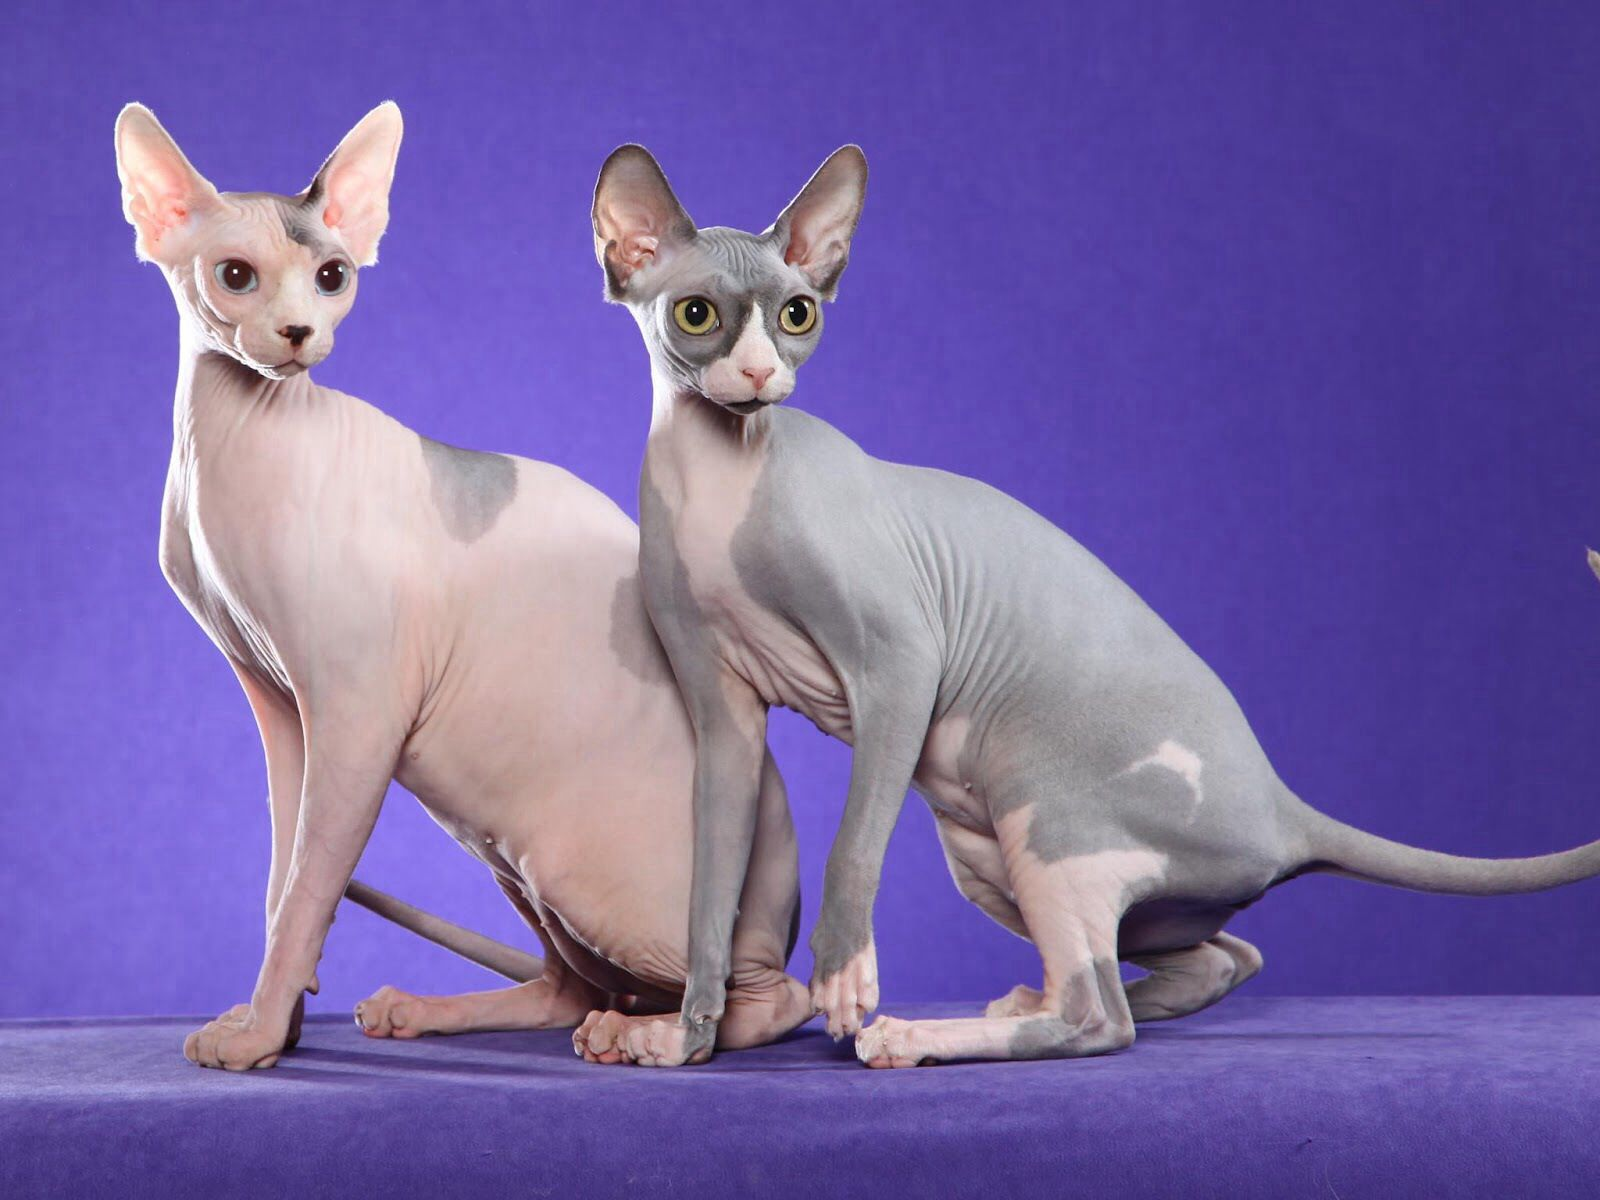 Sphinx Gorgeous Cat Breeds Cute Cats Hairless Cat